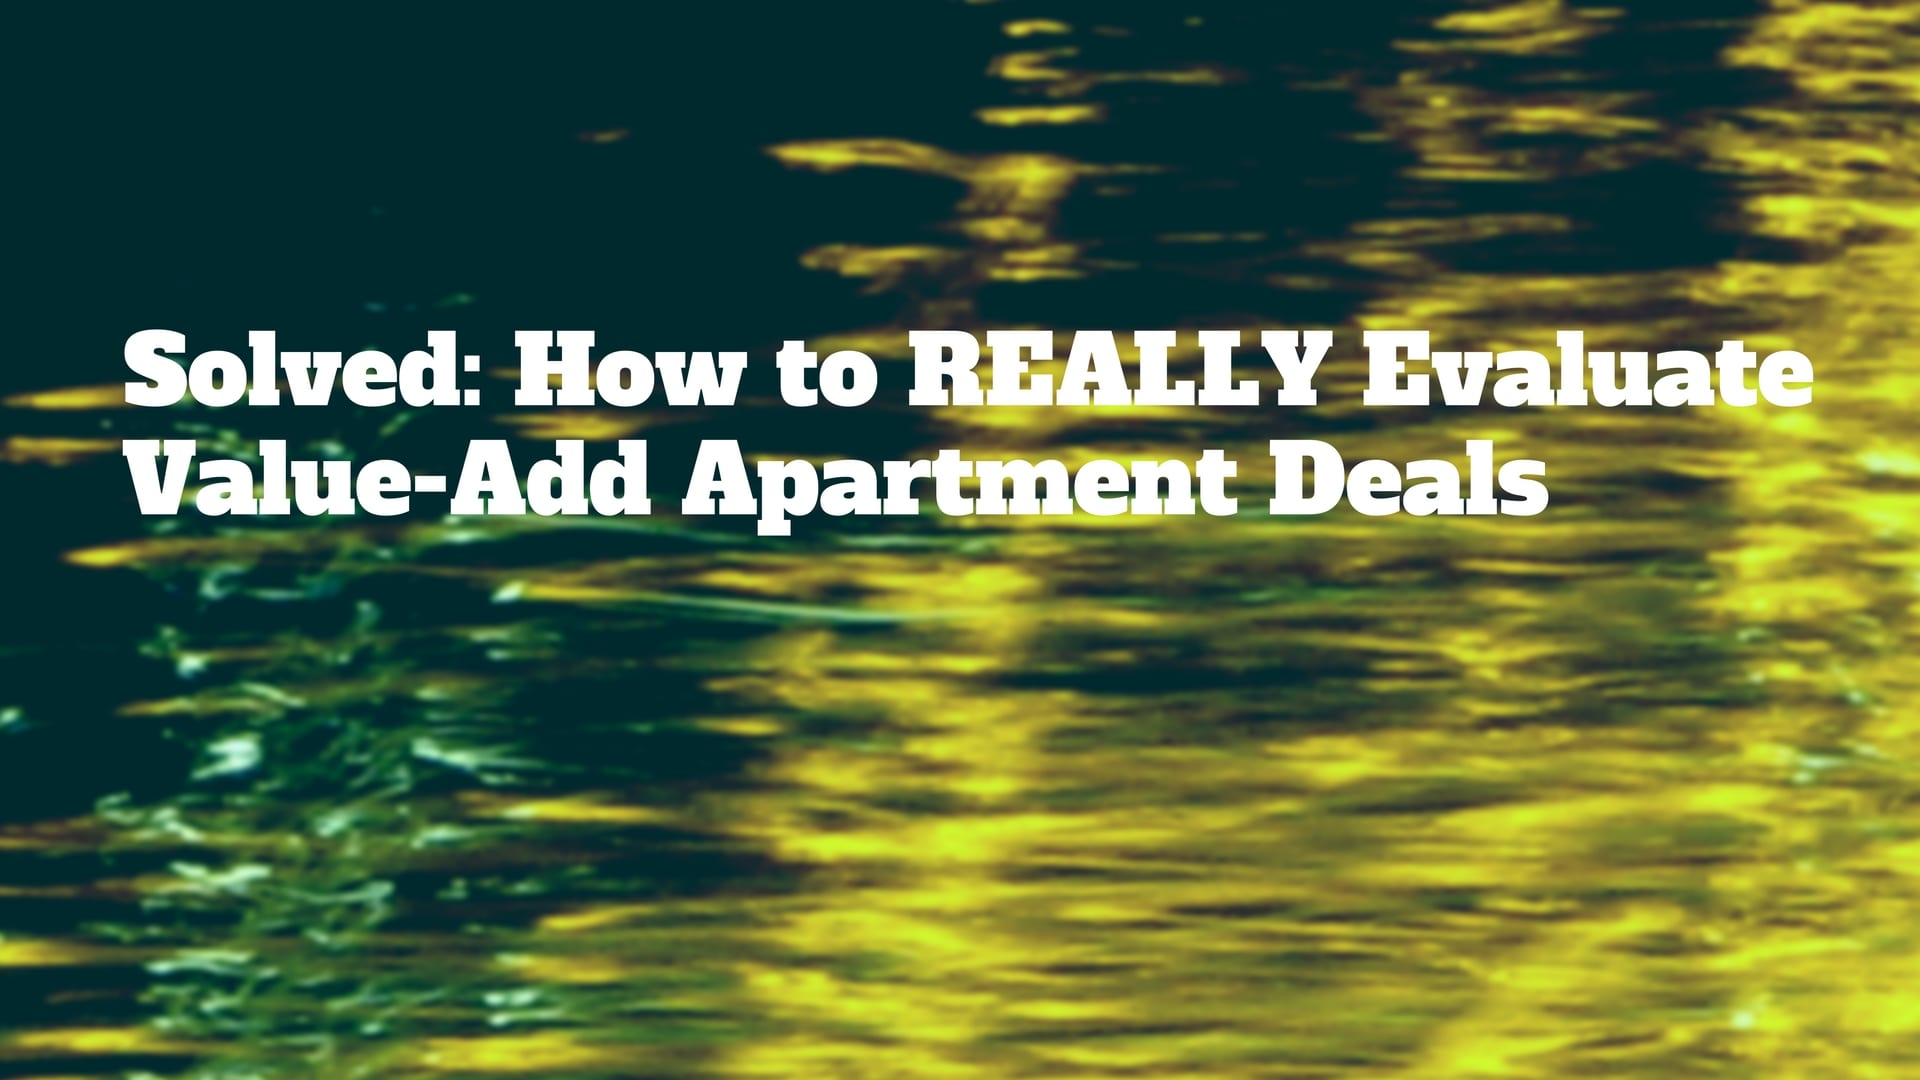 Solved: How to REALLY Evaluate Value-Add Apartment Deals